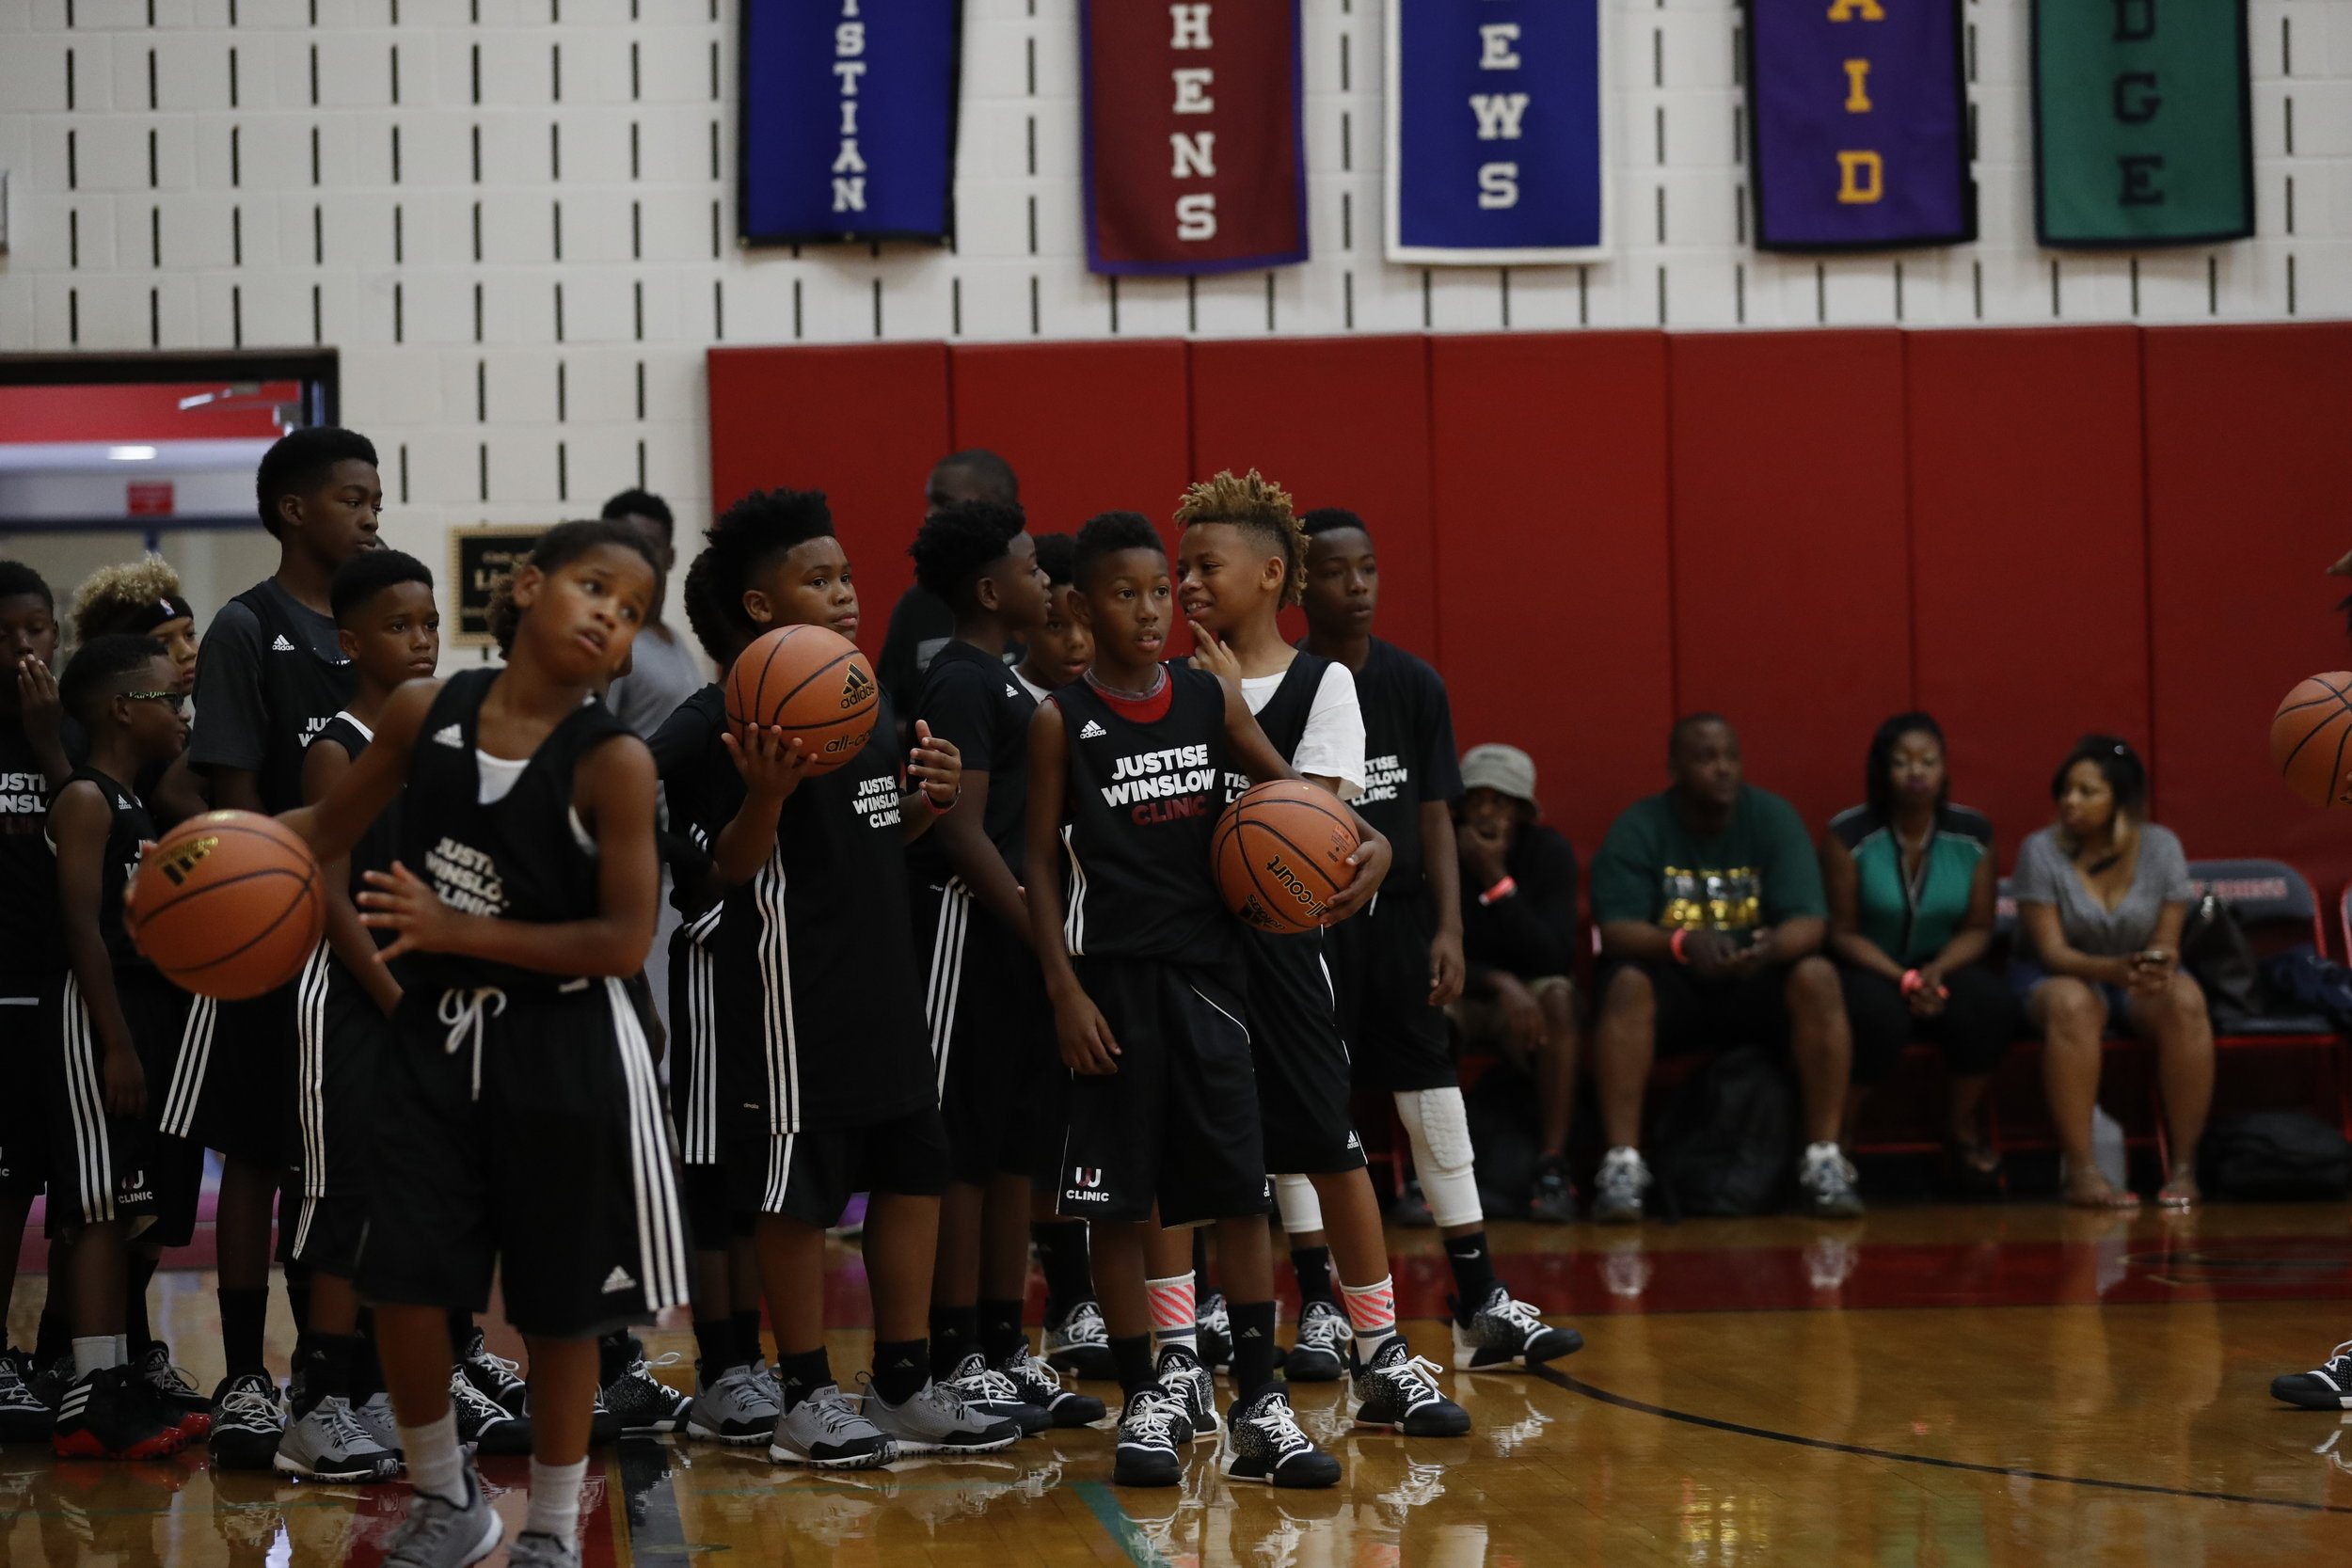 Justise Winslow Invitational Camp 003.jpg